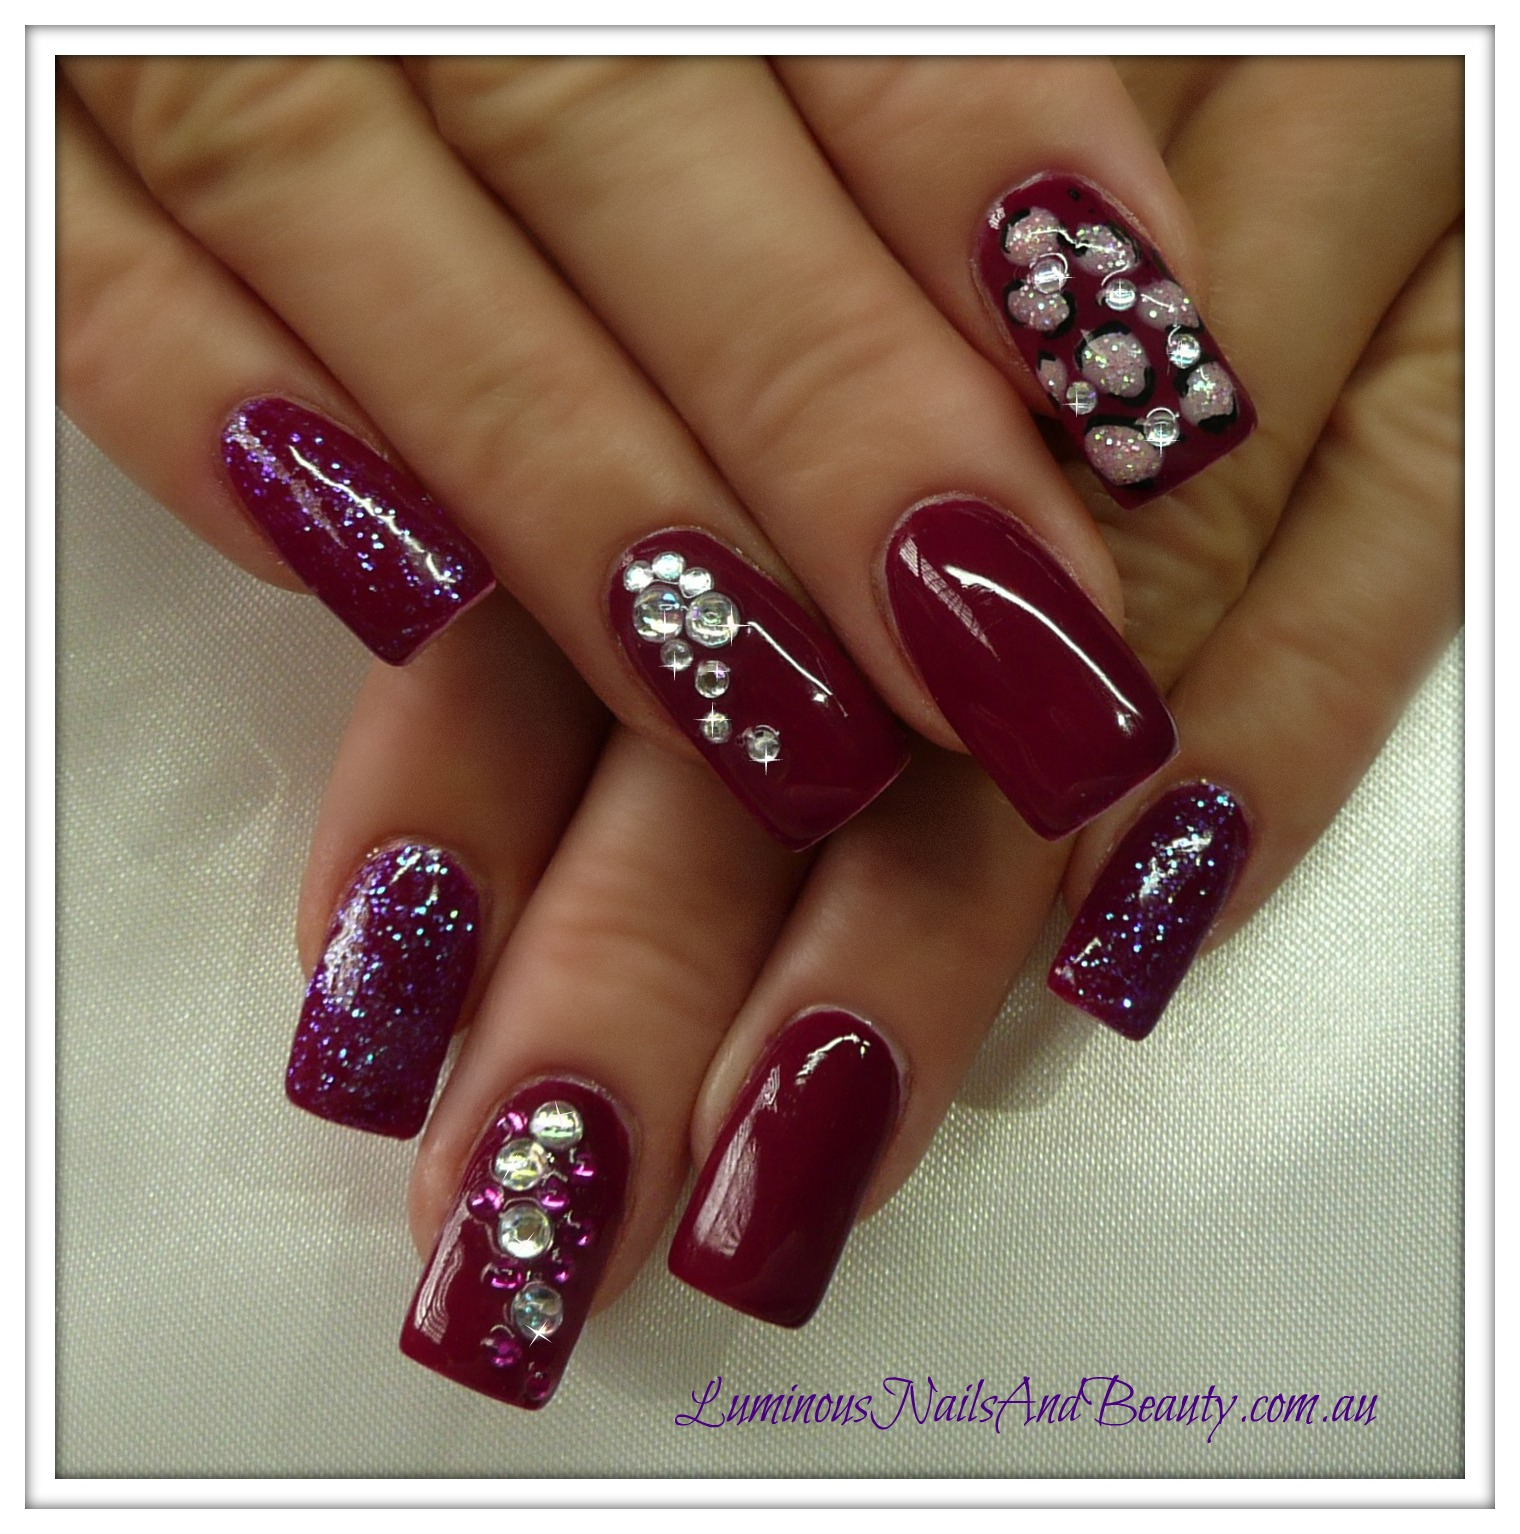 The Astounding Simple leopard print nail designs pictures Digital Photography